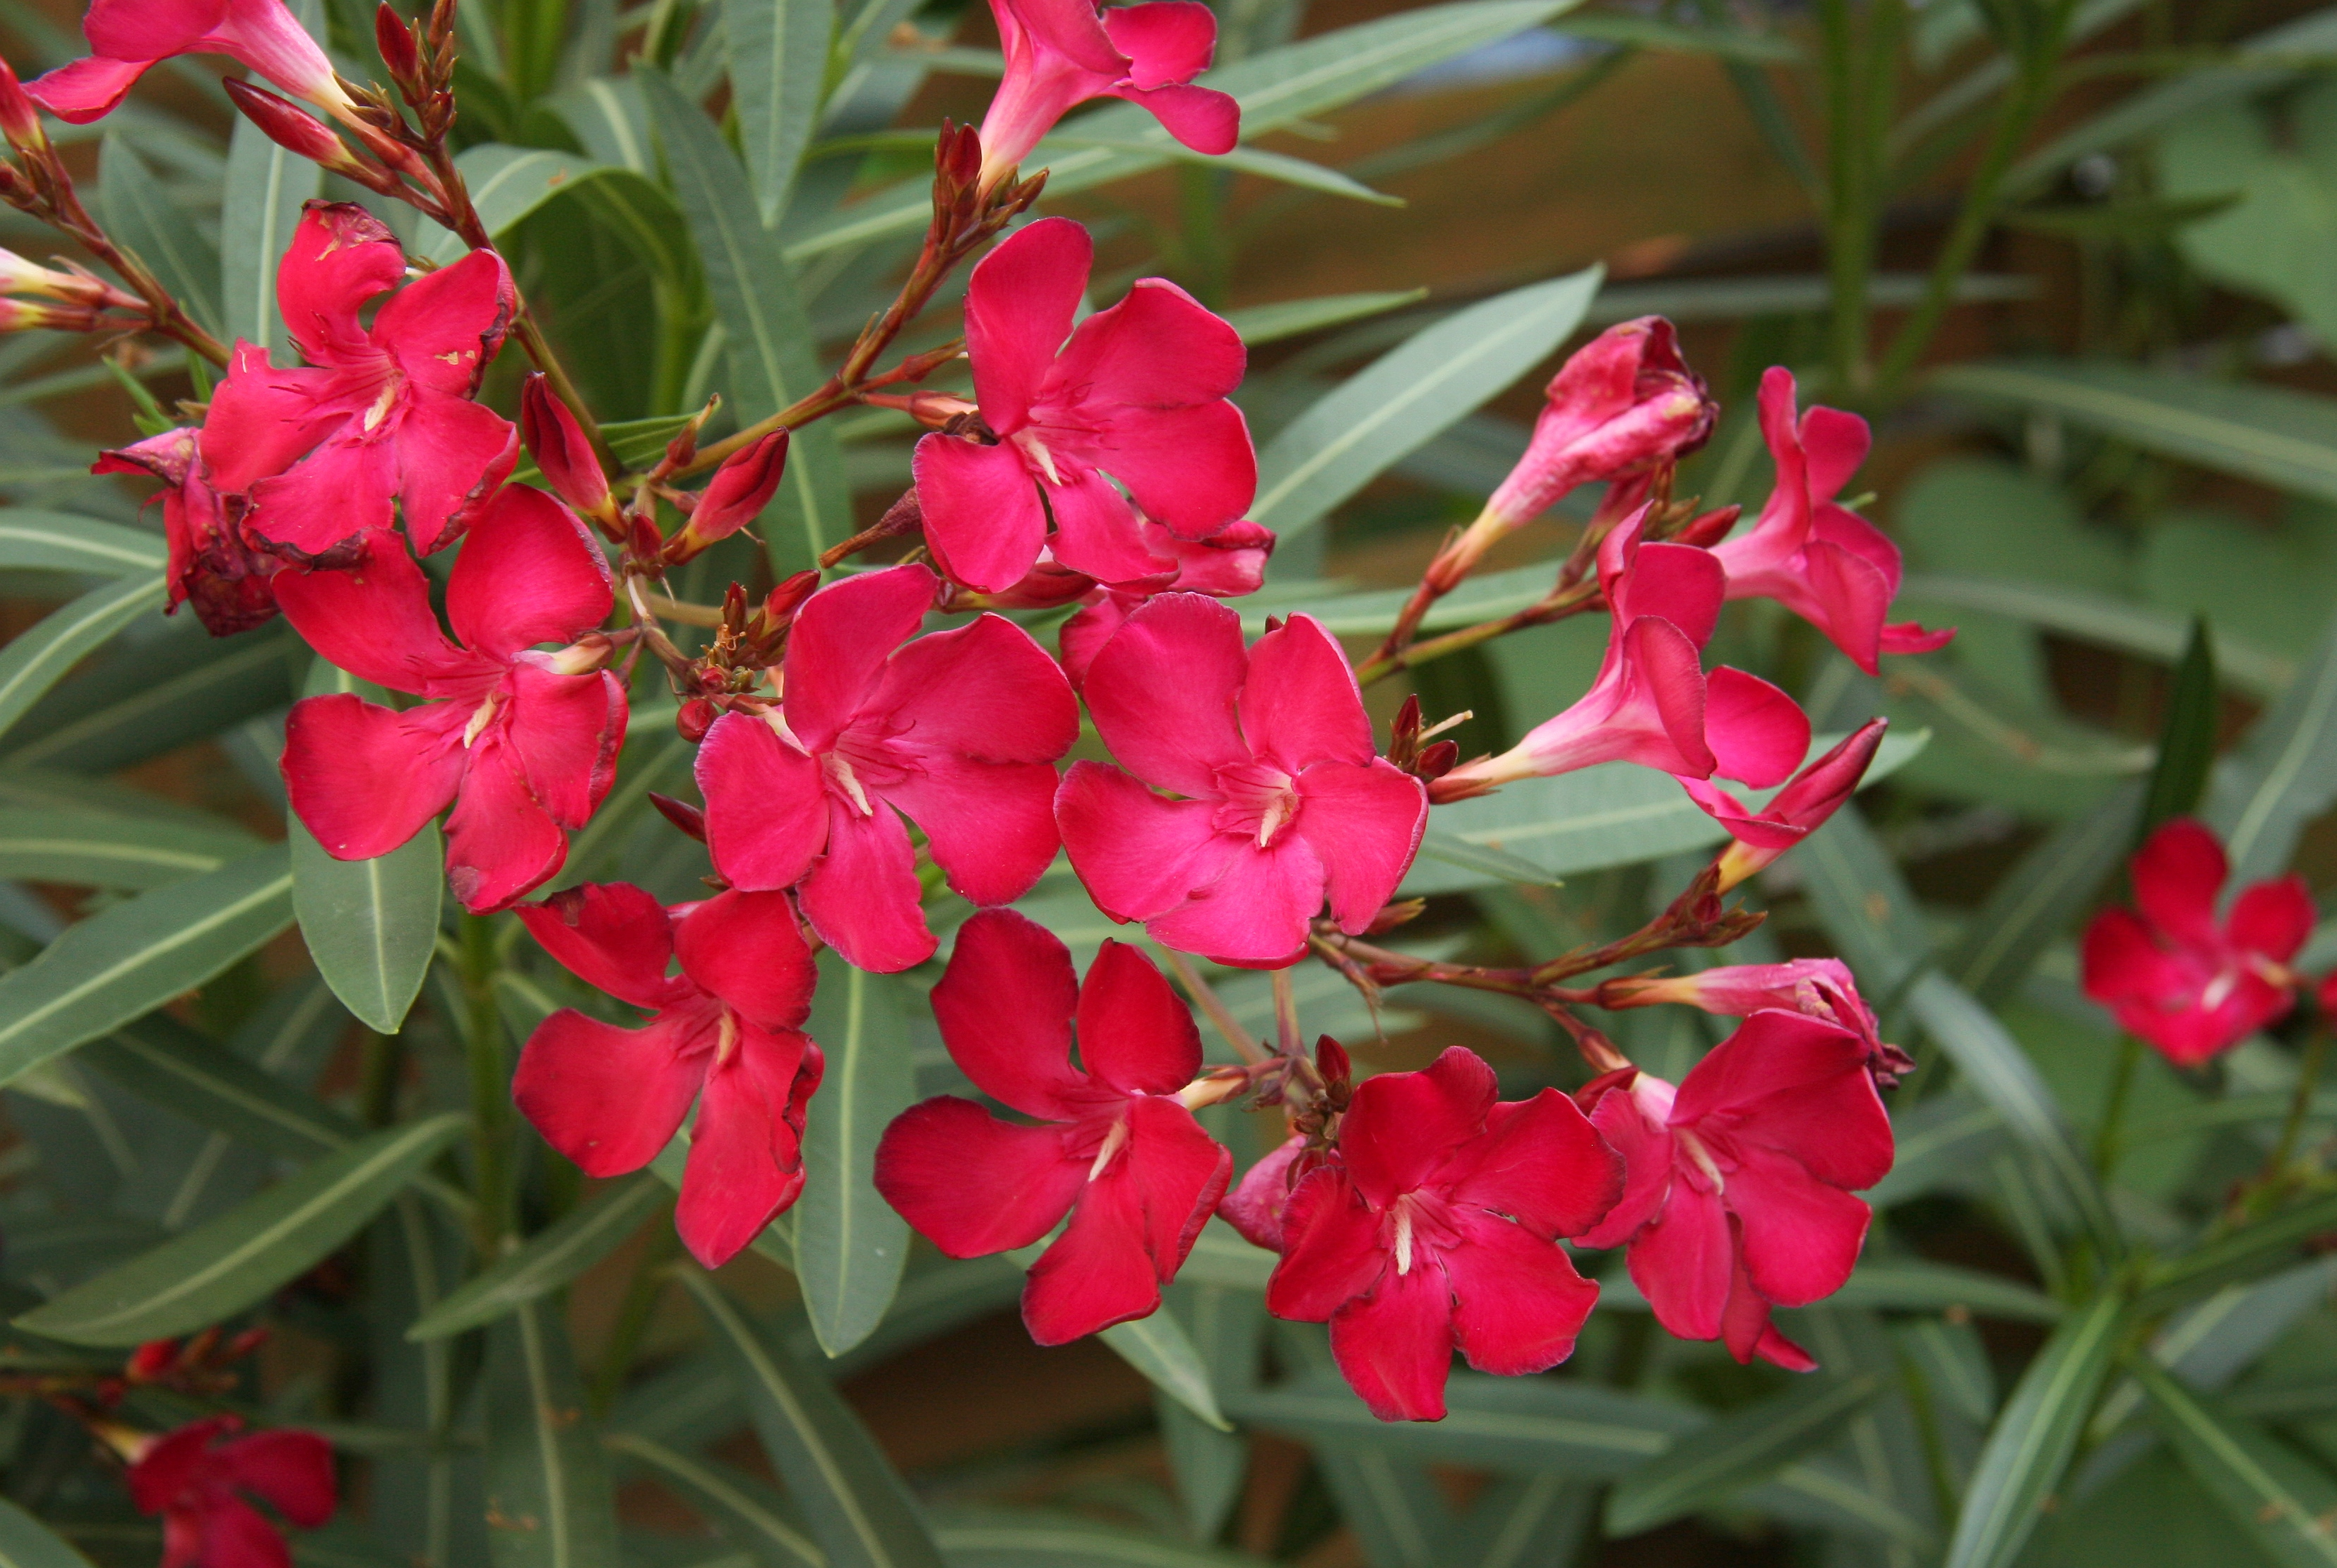 By Maja Dumat from Deutschland (Germany) (Oleander (Nerium oleander)) [CC BY 2.0 (http://creativecommons.org/licenses/by/2.0)], via Wikimedia Commons